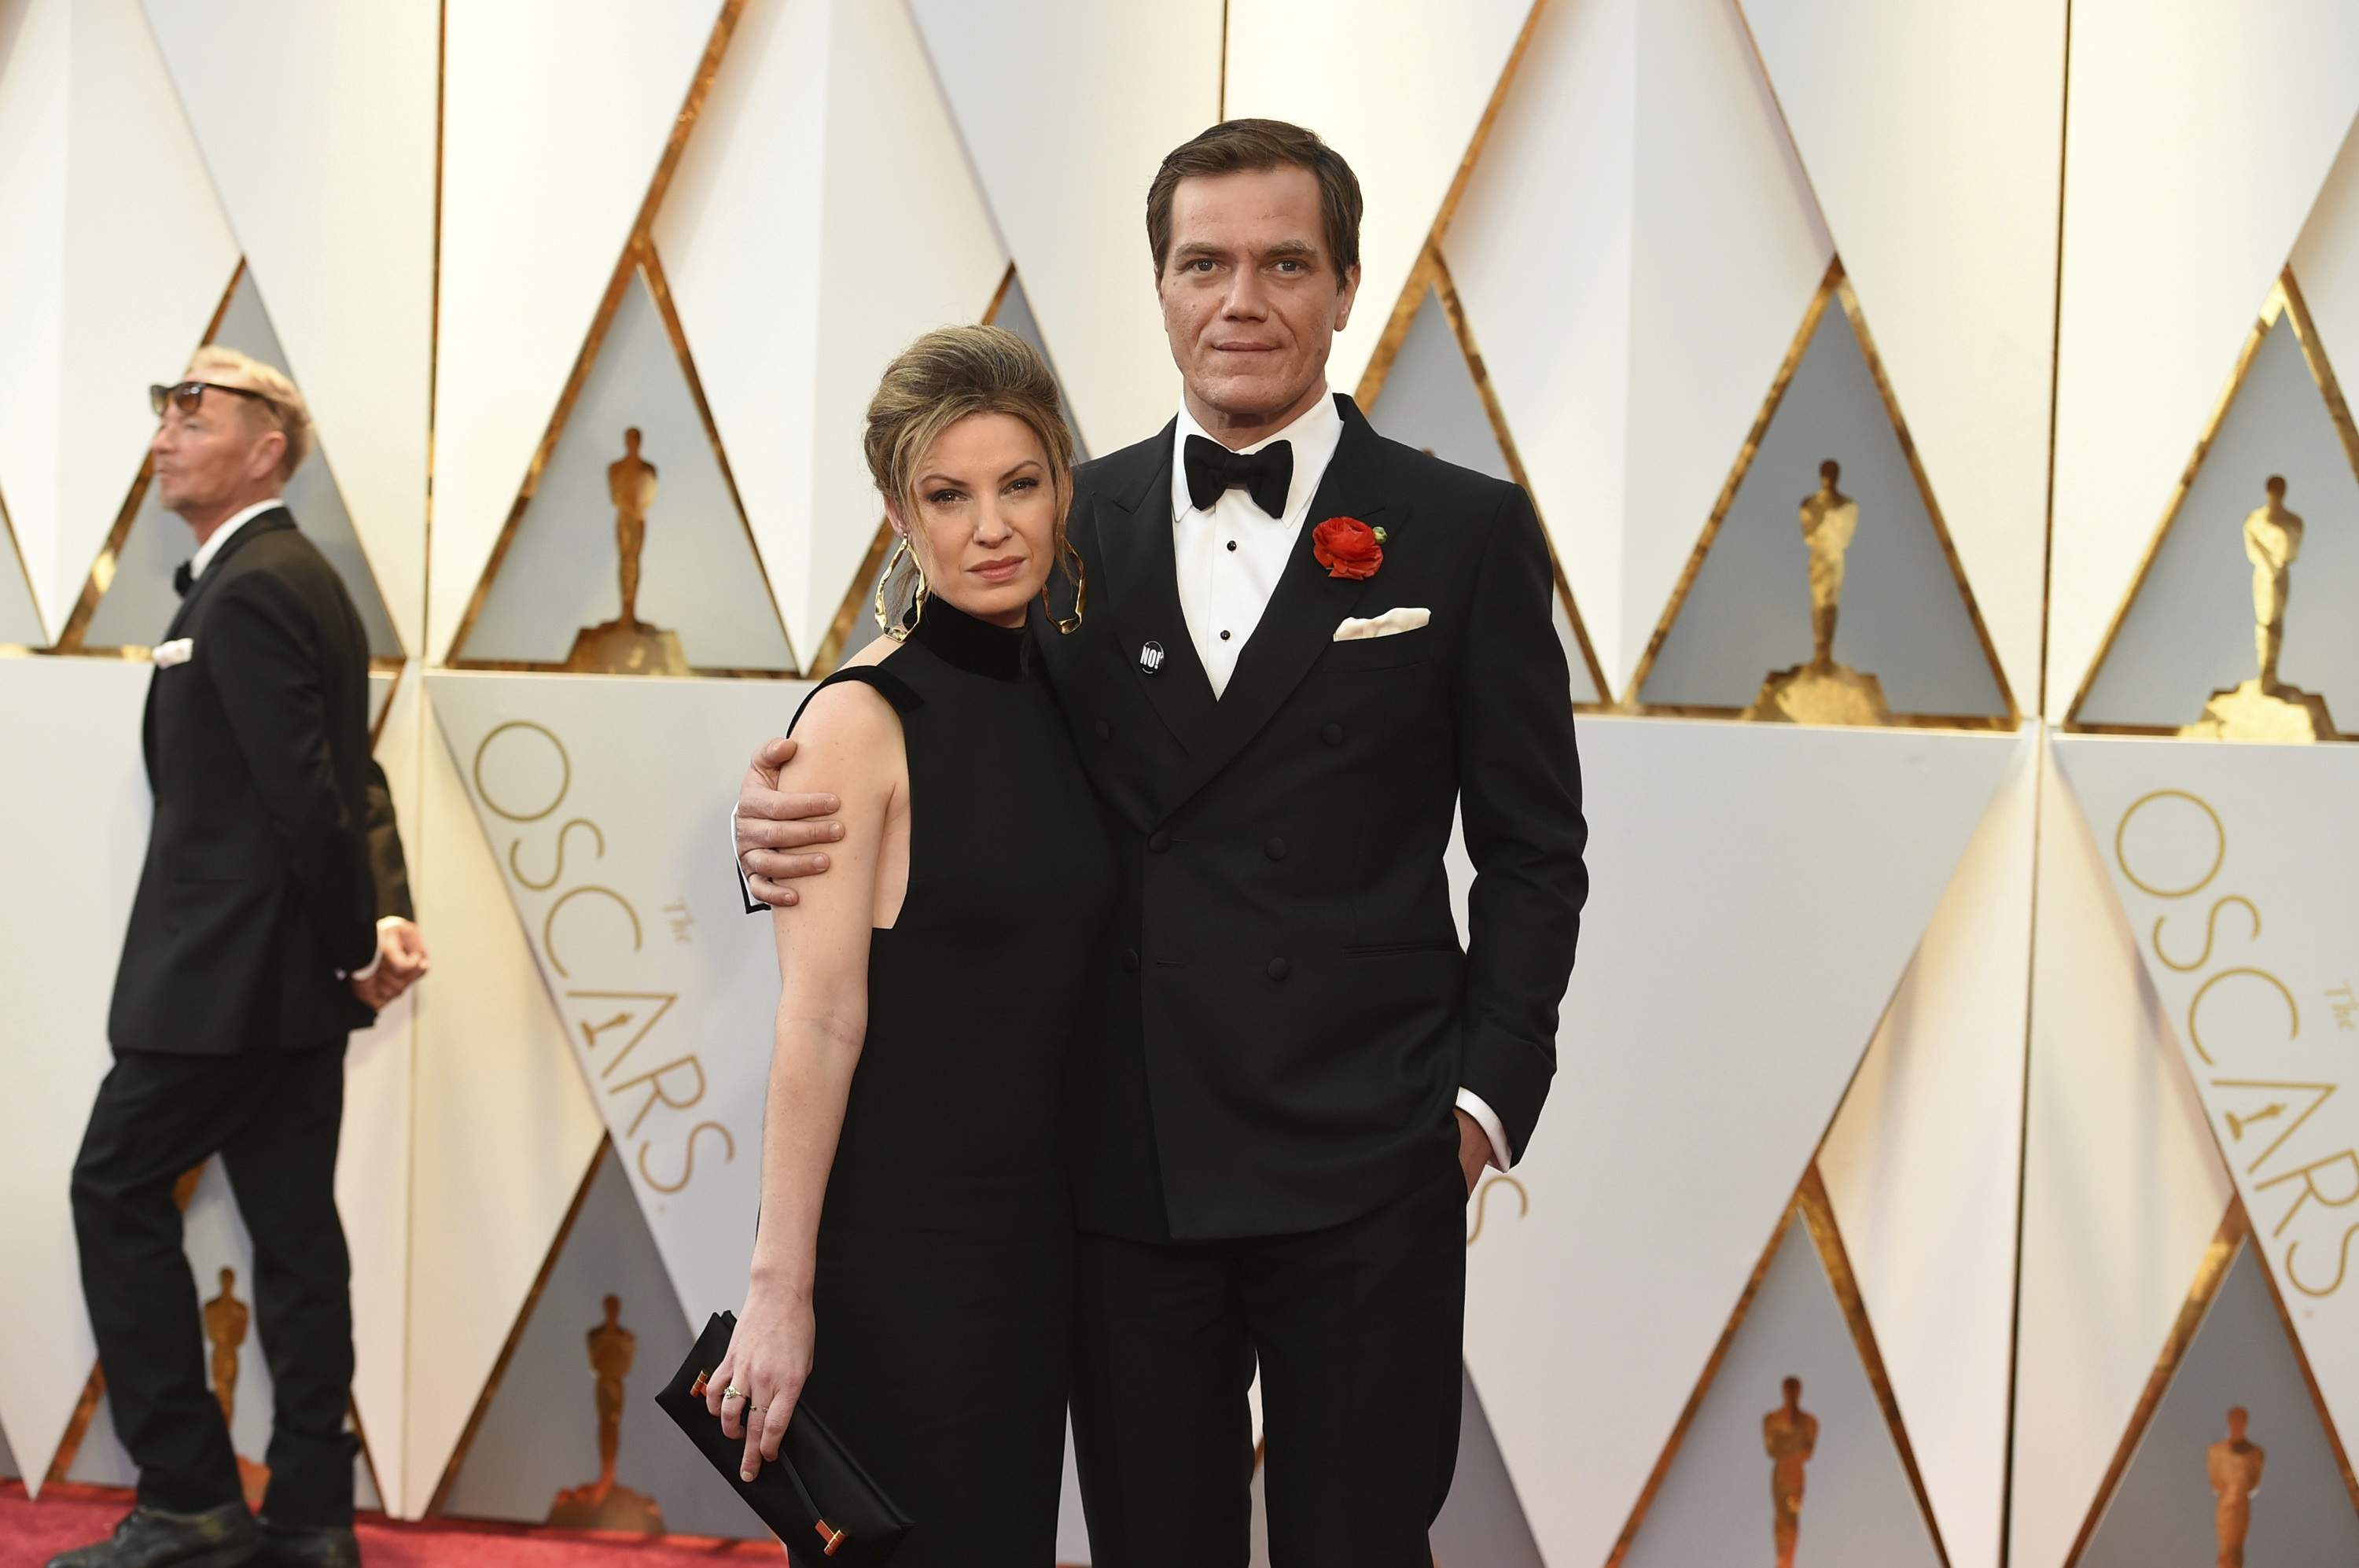 Kate Arrington, left, and Michael Shannon arrive at the Oscars on Sunday, Feb. 26, 2017, at the Dolby Theatre in Los Angeles. THE ASSOCIATED PRESS